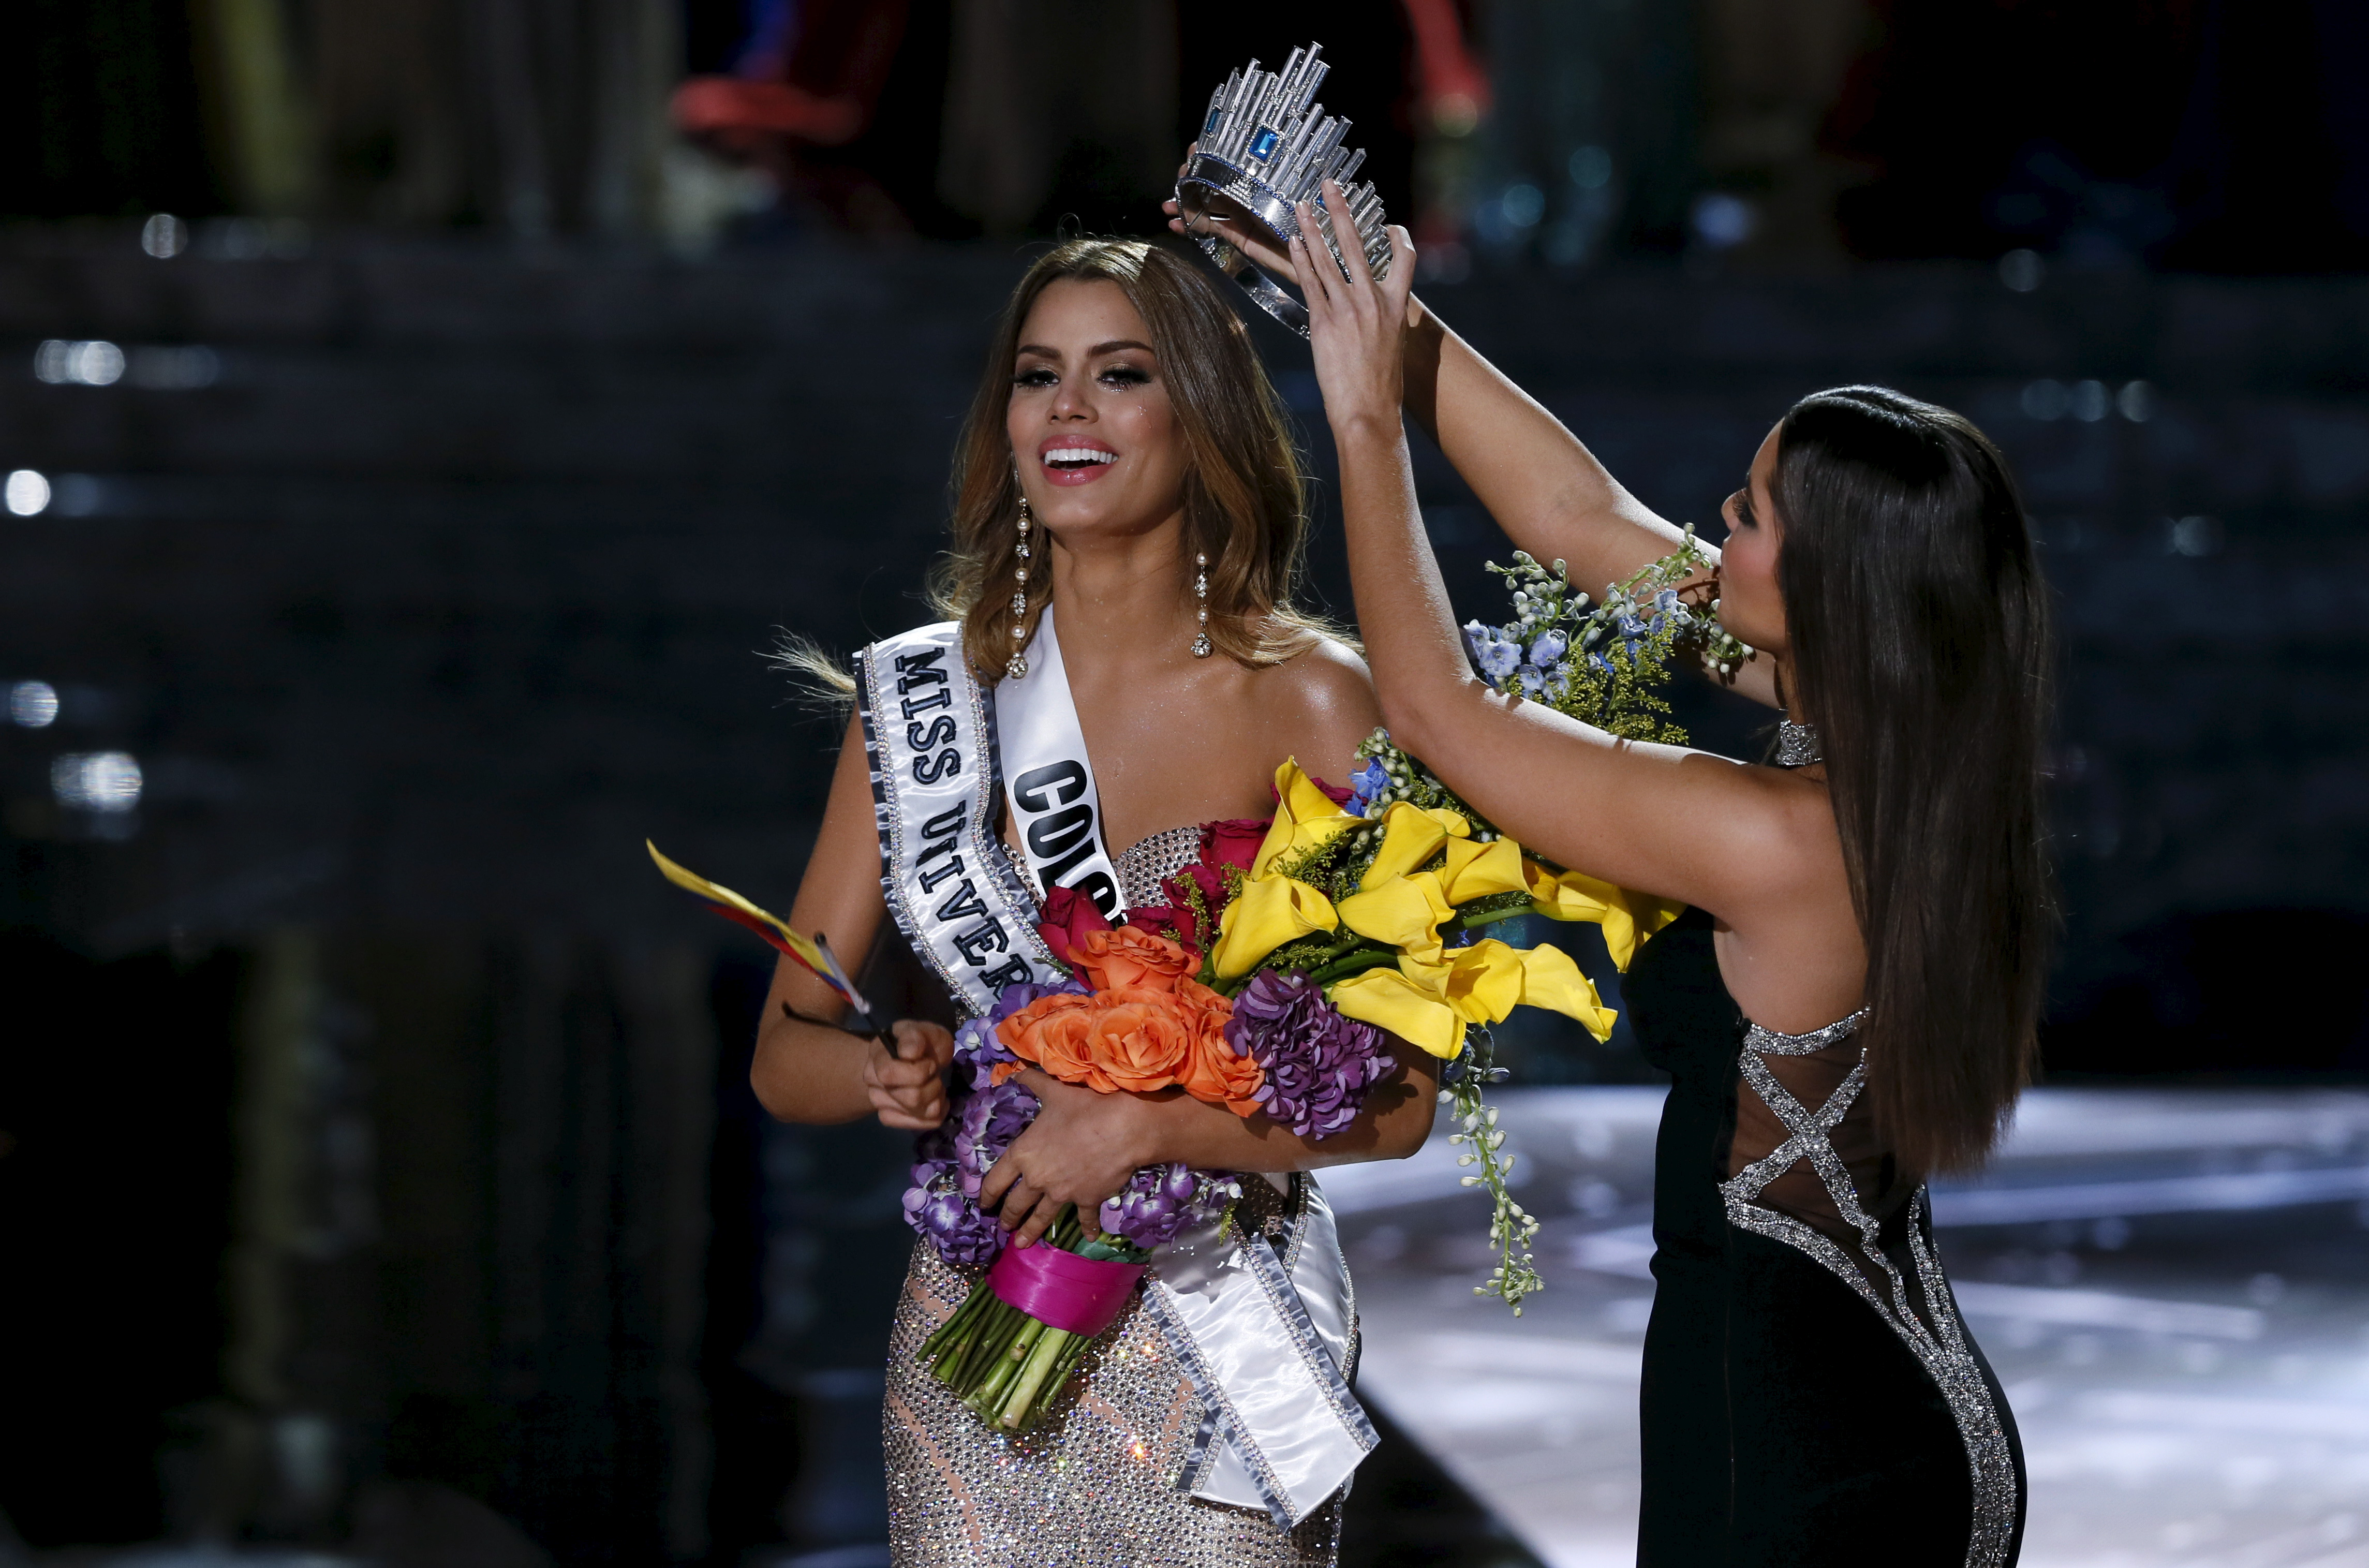 Miss Colombia Ariadna Gutierrez (L) is crowned by Miss Universe 2014 Paulina Vega, also of Colombia, after Gutierrez was initially announced as the winner during the 2015 Miss Universe Pageant in Las Vegas, Nevada, December 20, 2015. Host Steve Harvey said he made a mistake when reading the card and and Miss Philippines Pia Alonzo Wurtzbach is the actual winner. REUTERS/Steve Marcus ATTENTION EDITORS - FOR EDITORIAL USE ONLY. NOT FOR SALE FOR MARKETING OR ADVERTISING CAMPAIGNS - RTX1ZJNO